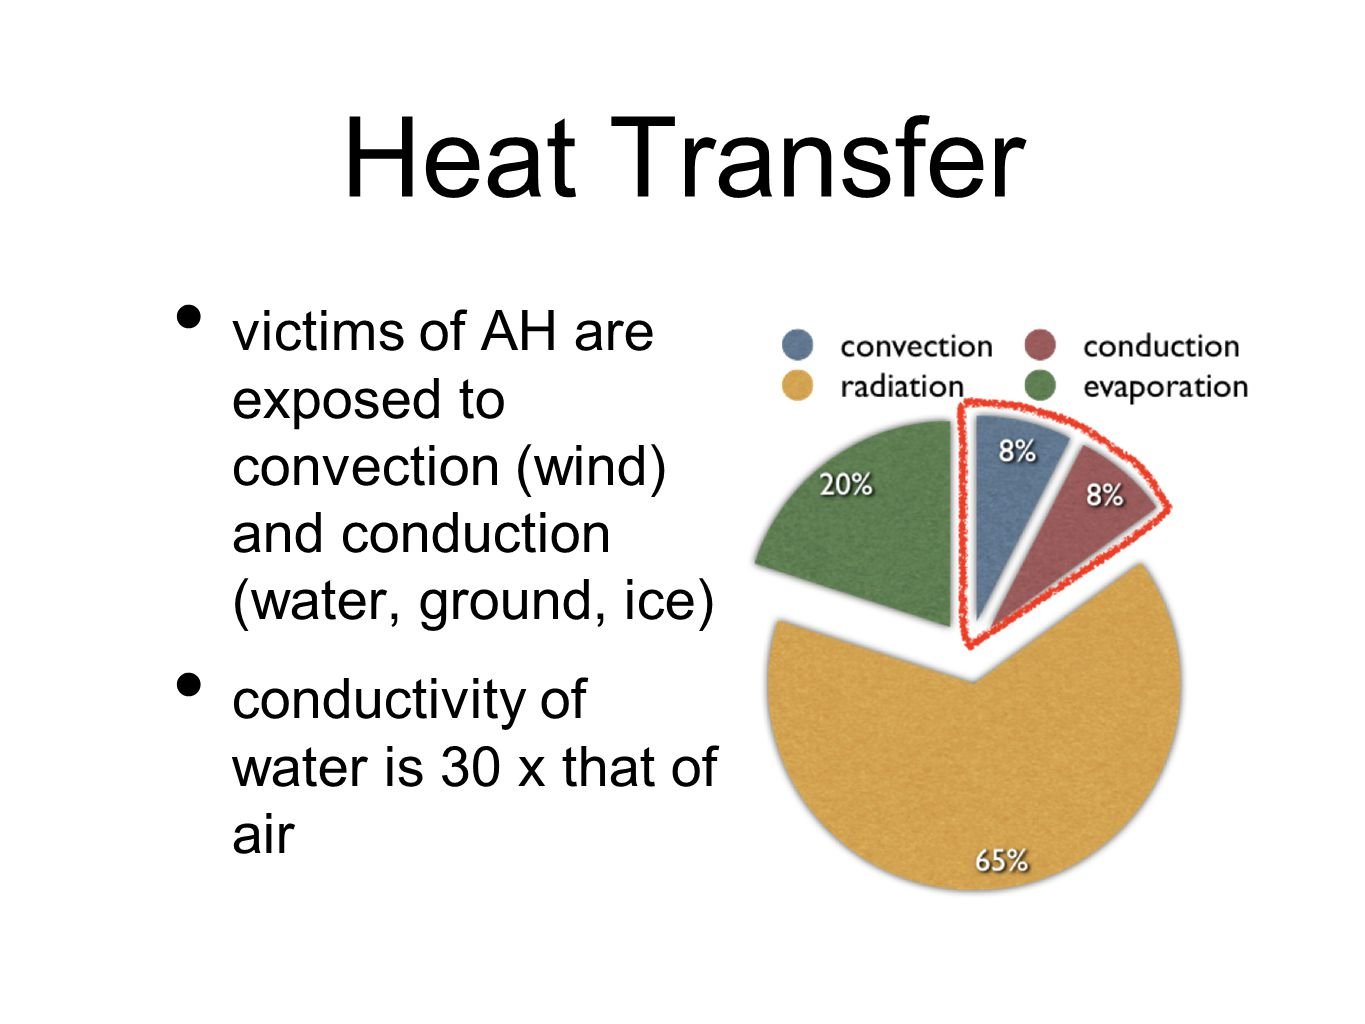 Heat Transfer victims of AH are exposed to convection (wind) and conduction (water, ground, ice) conductivity of water is 30 x that of air